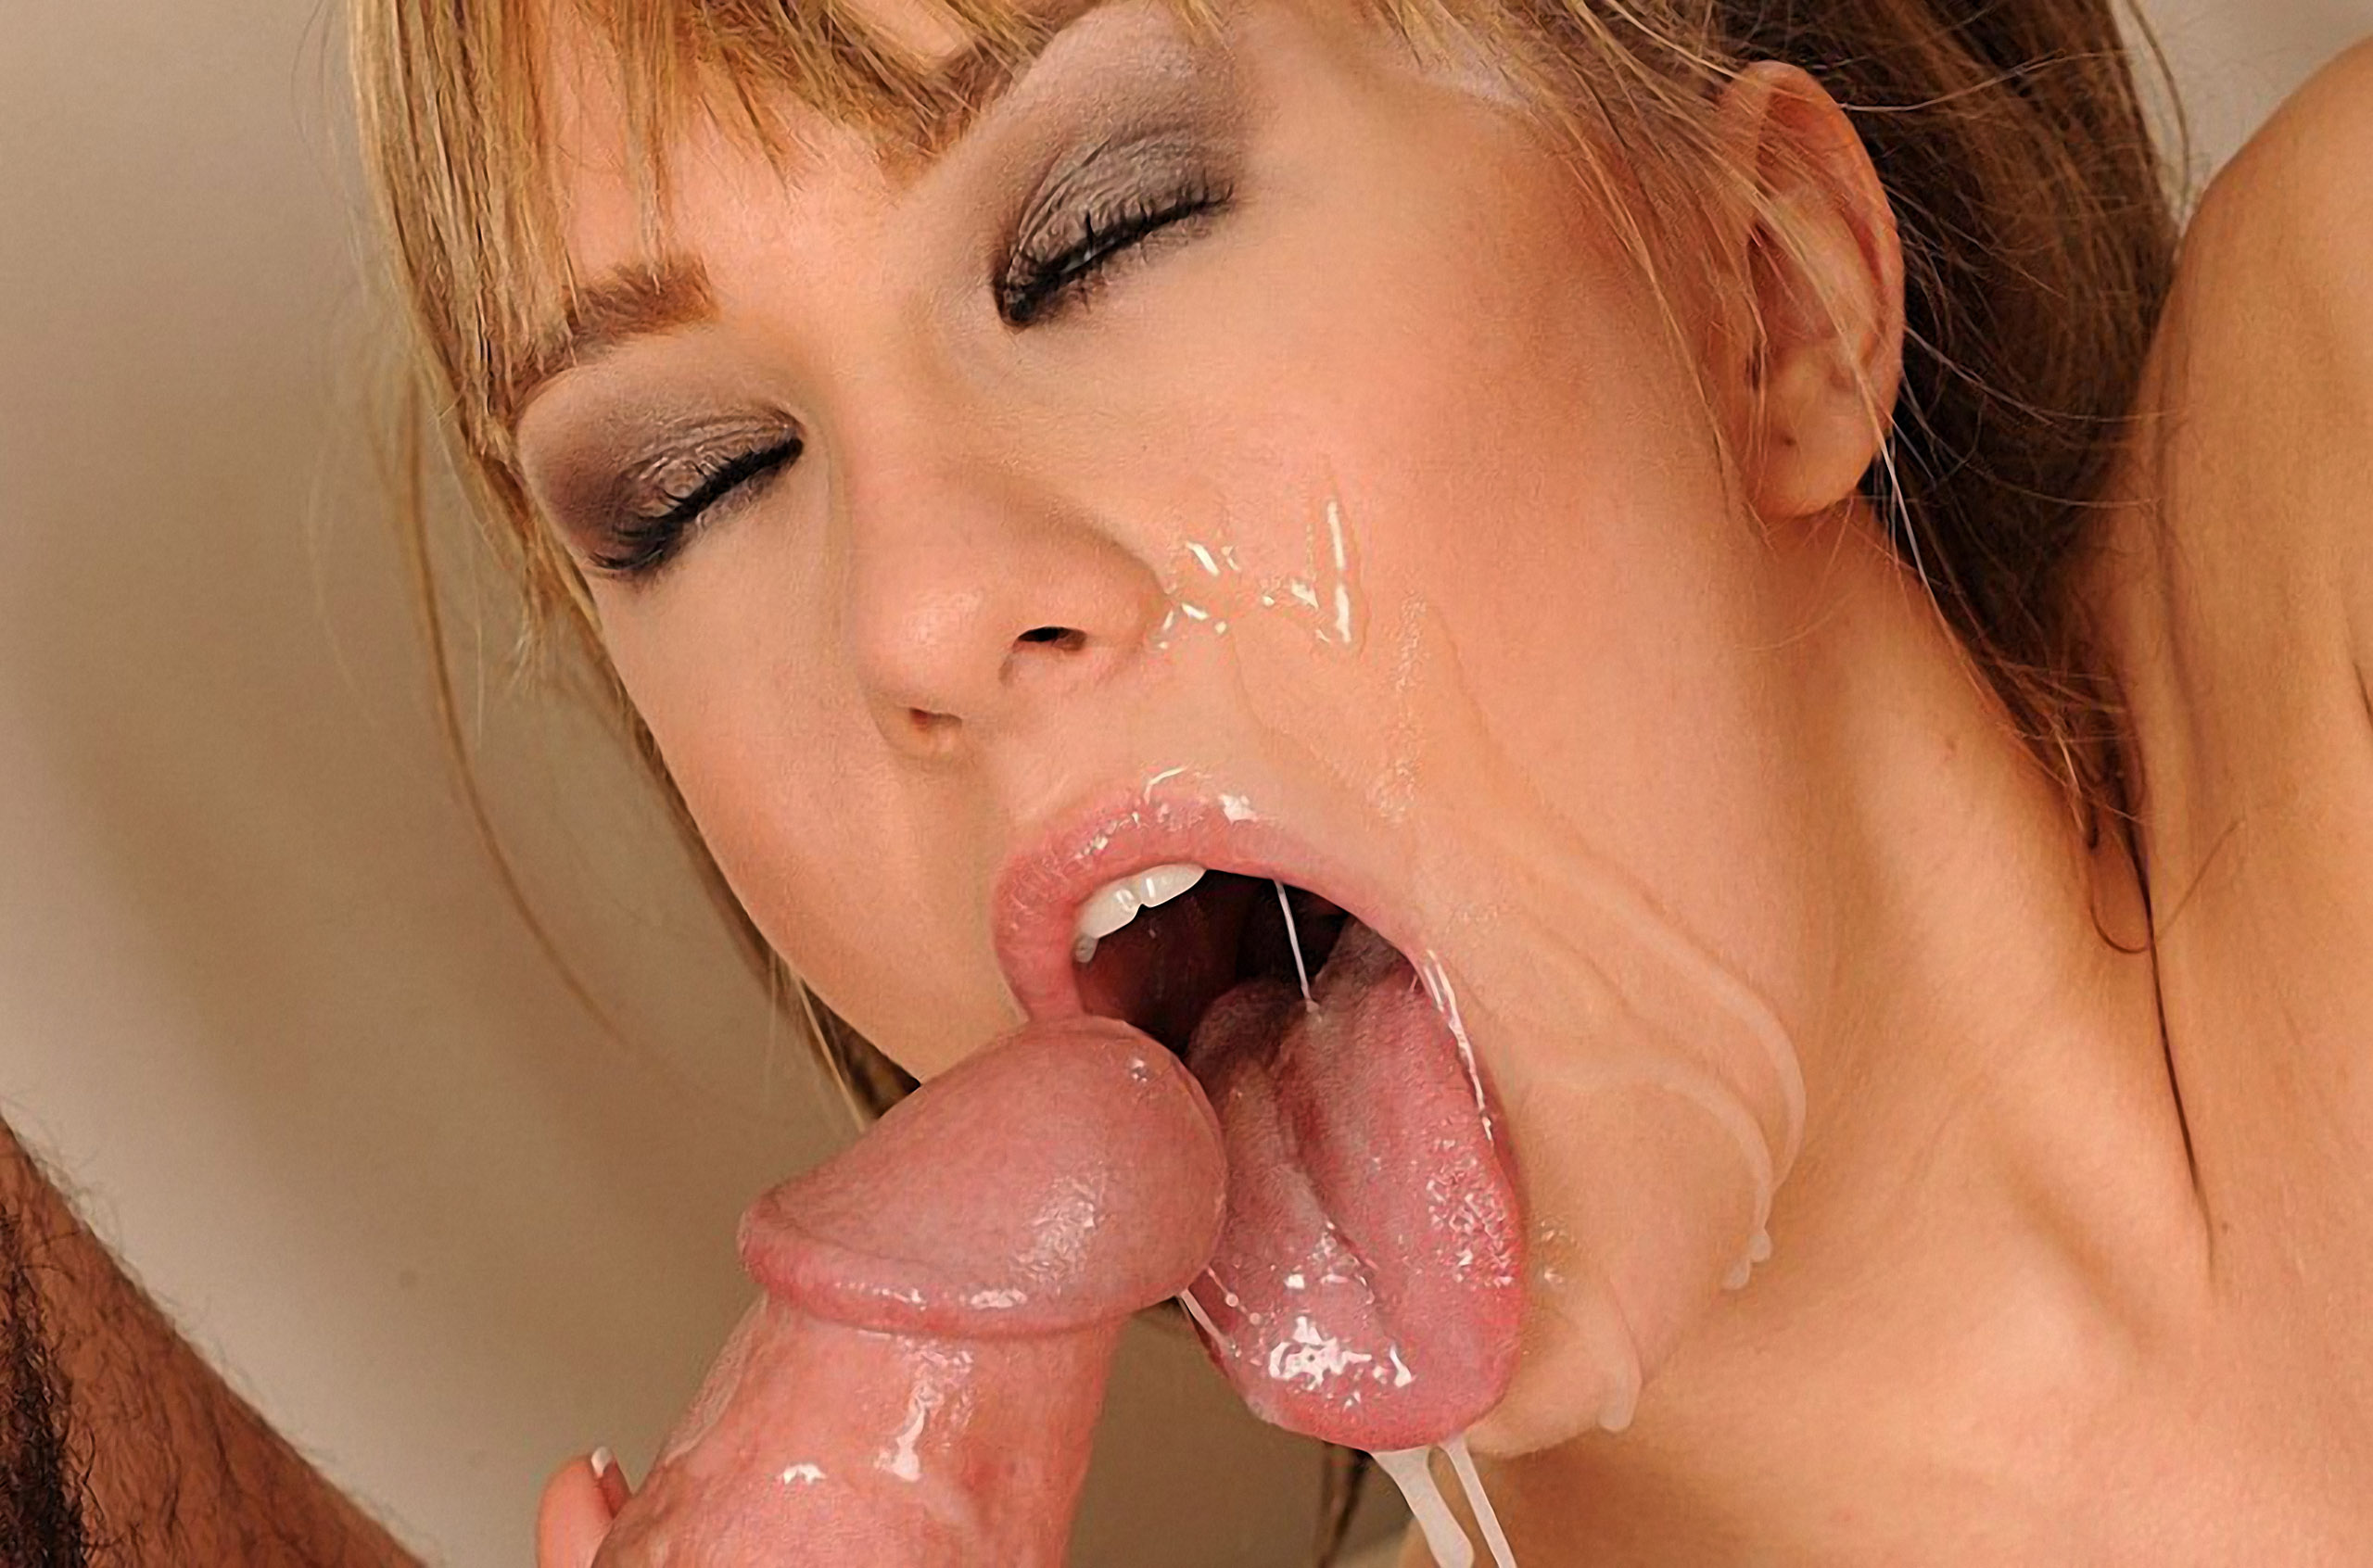 Wallpaper Hardcore, Blowjob, Oral, Blond, Teen, Facial -4694